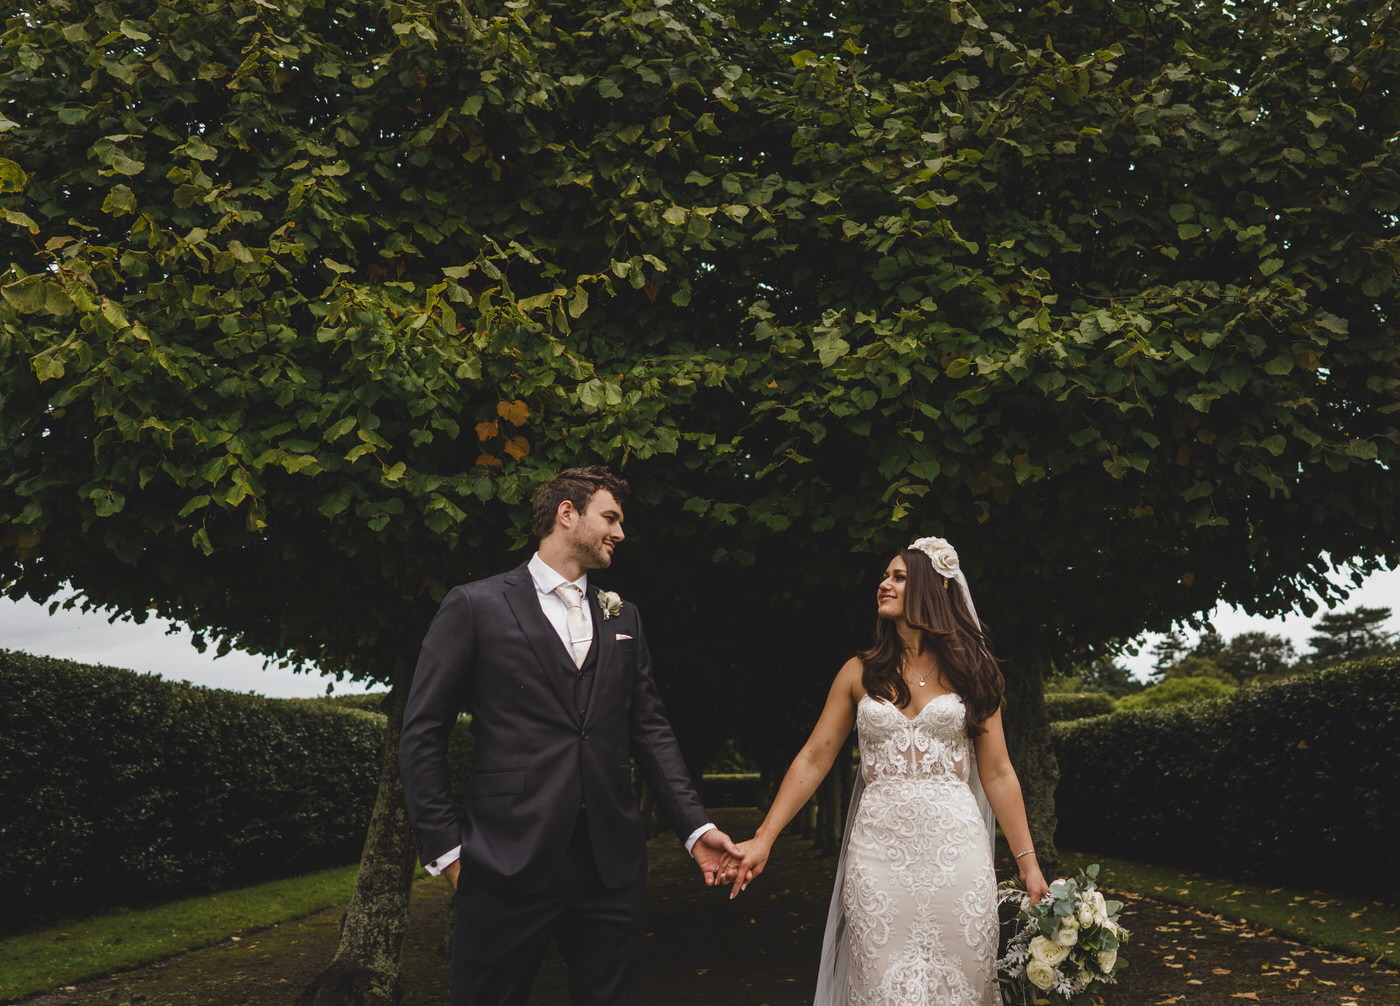 the bride and groom look at each other in front on a row of trees in the gardens of Thornton Manor